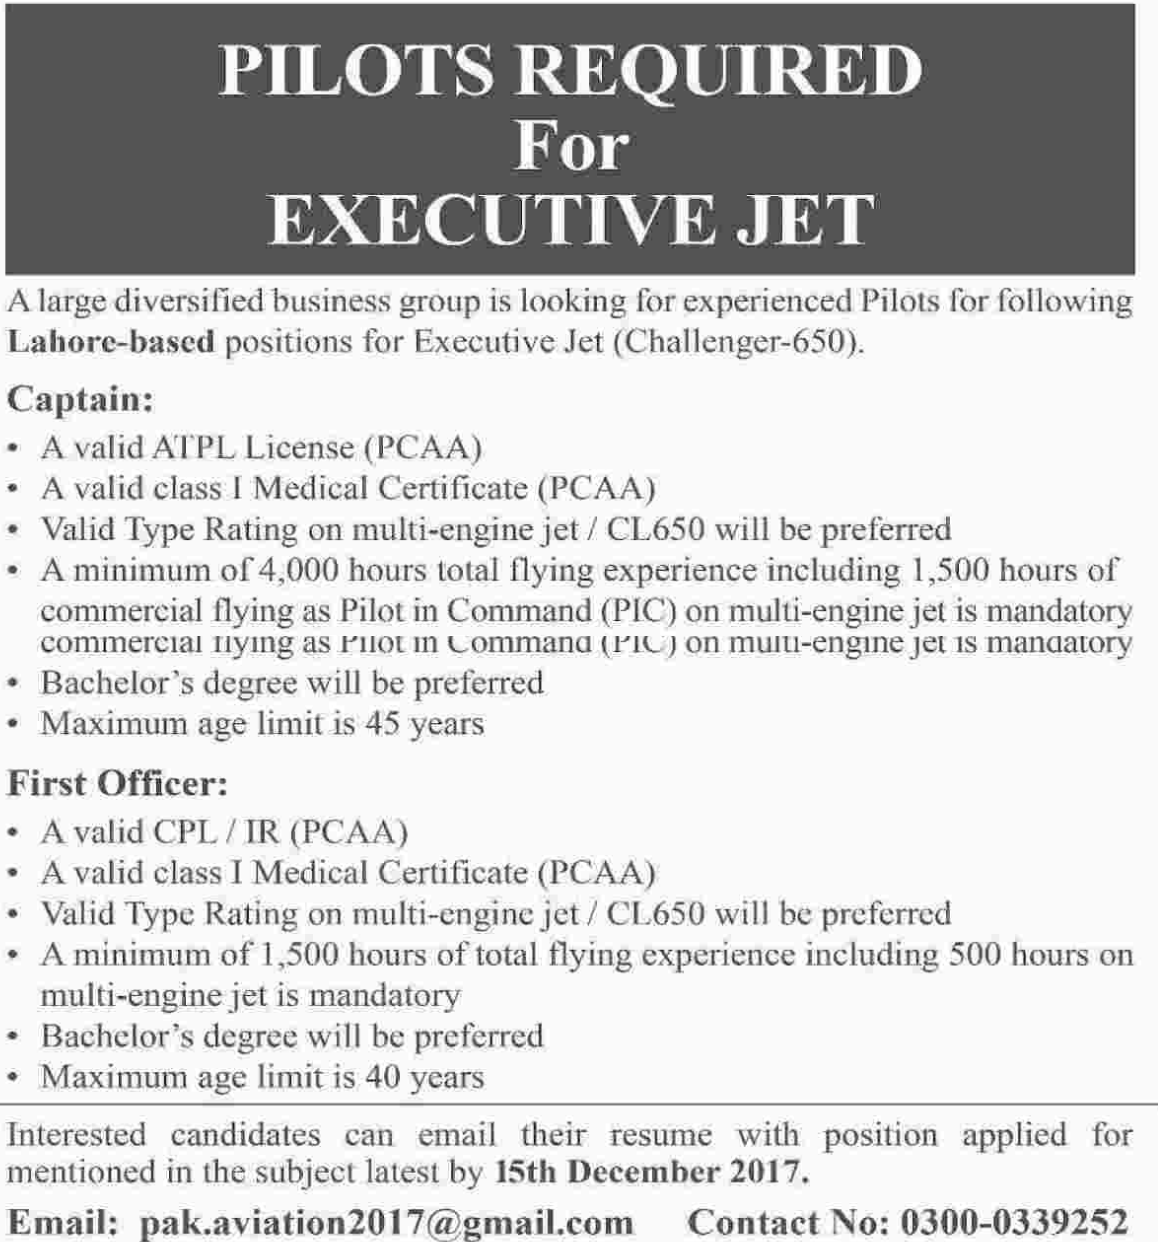 Pilots required for Executive Jet in Lahore 2017